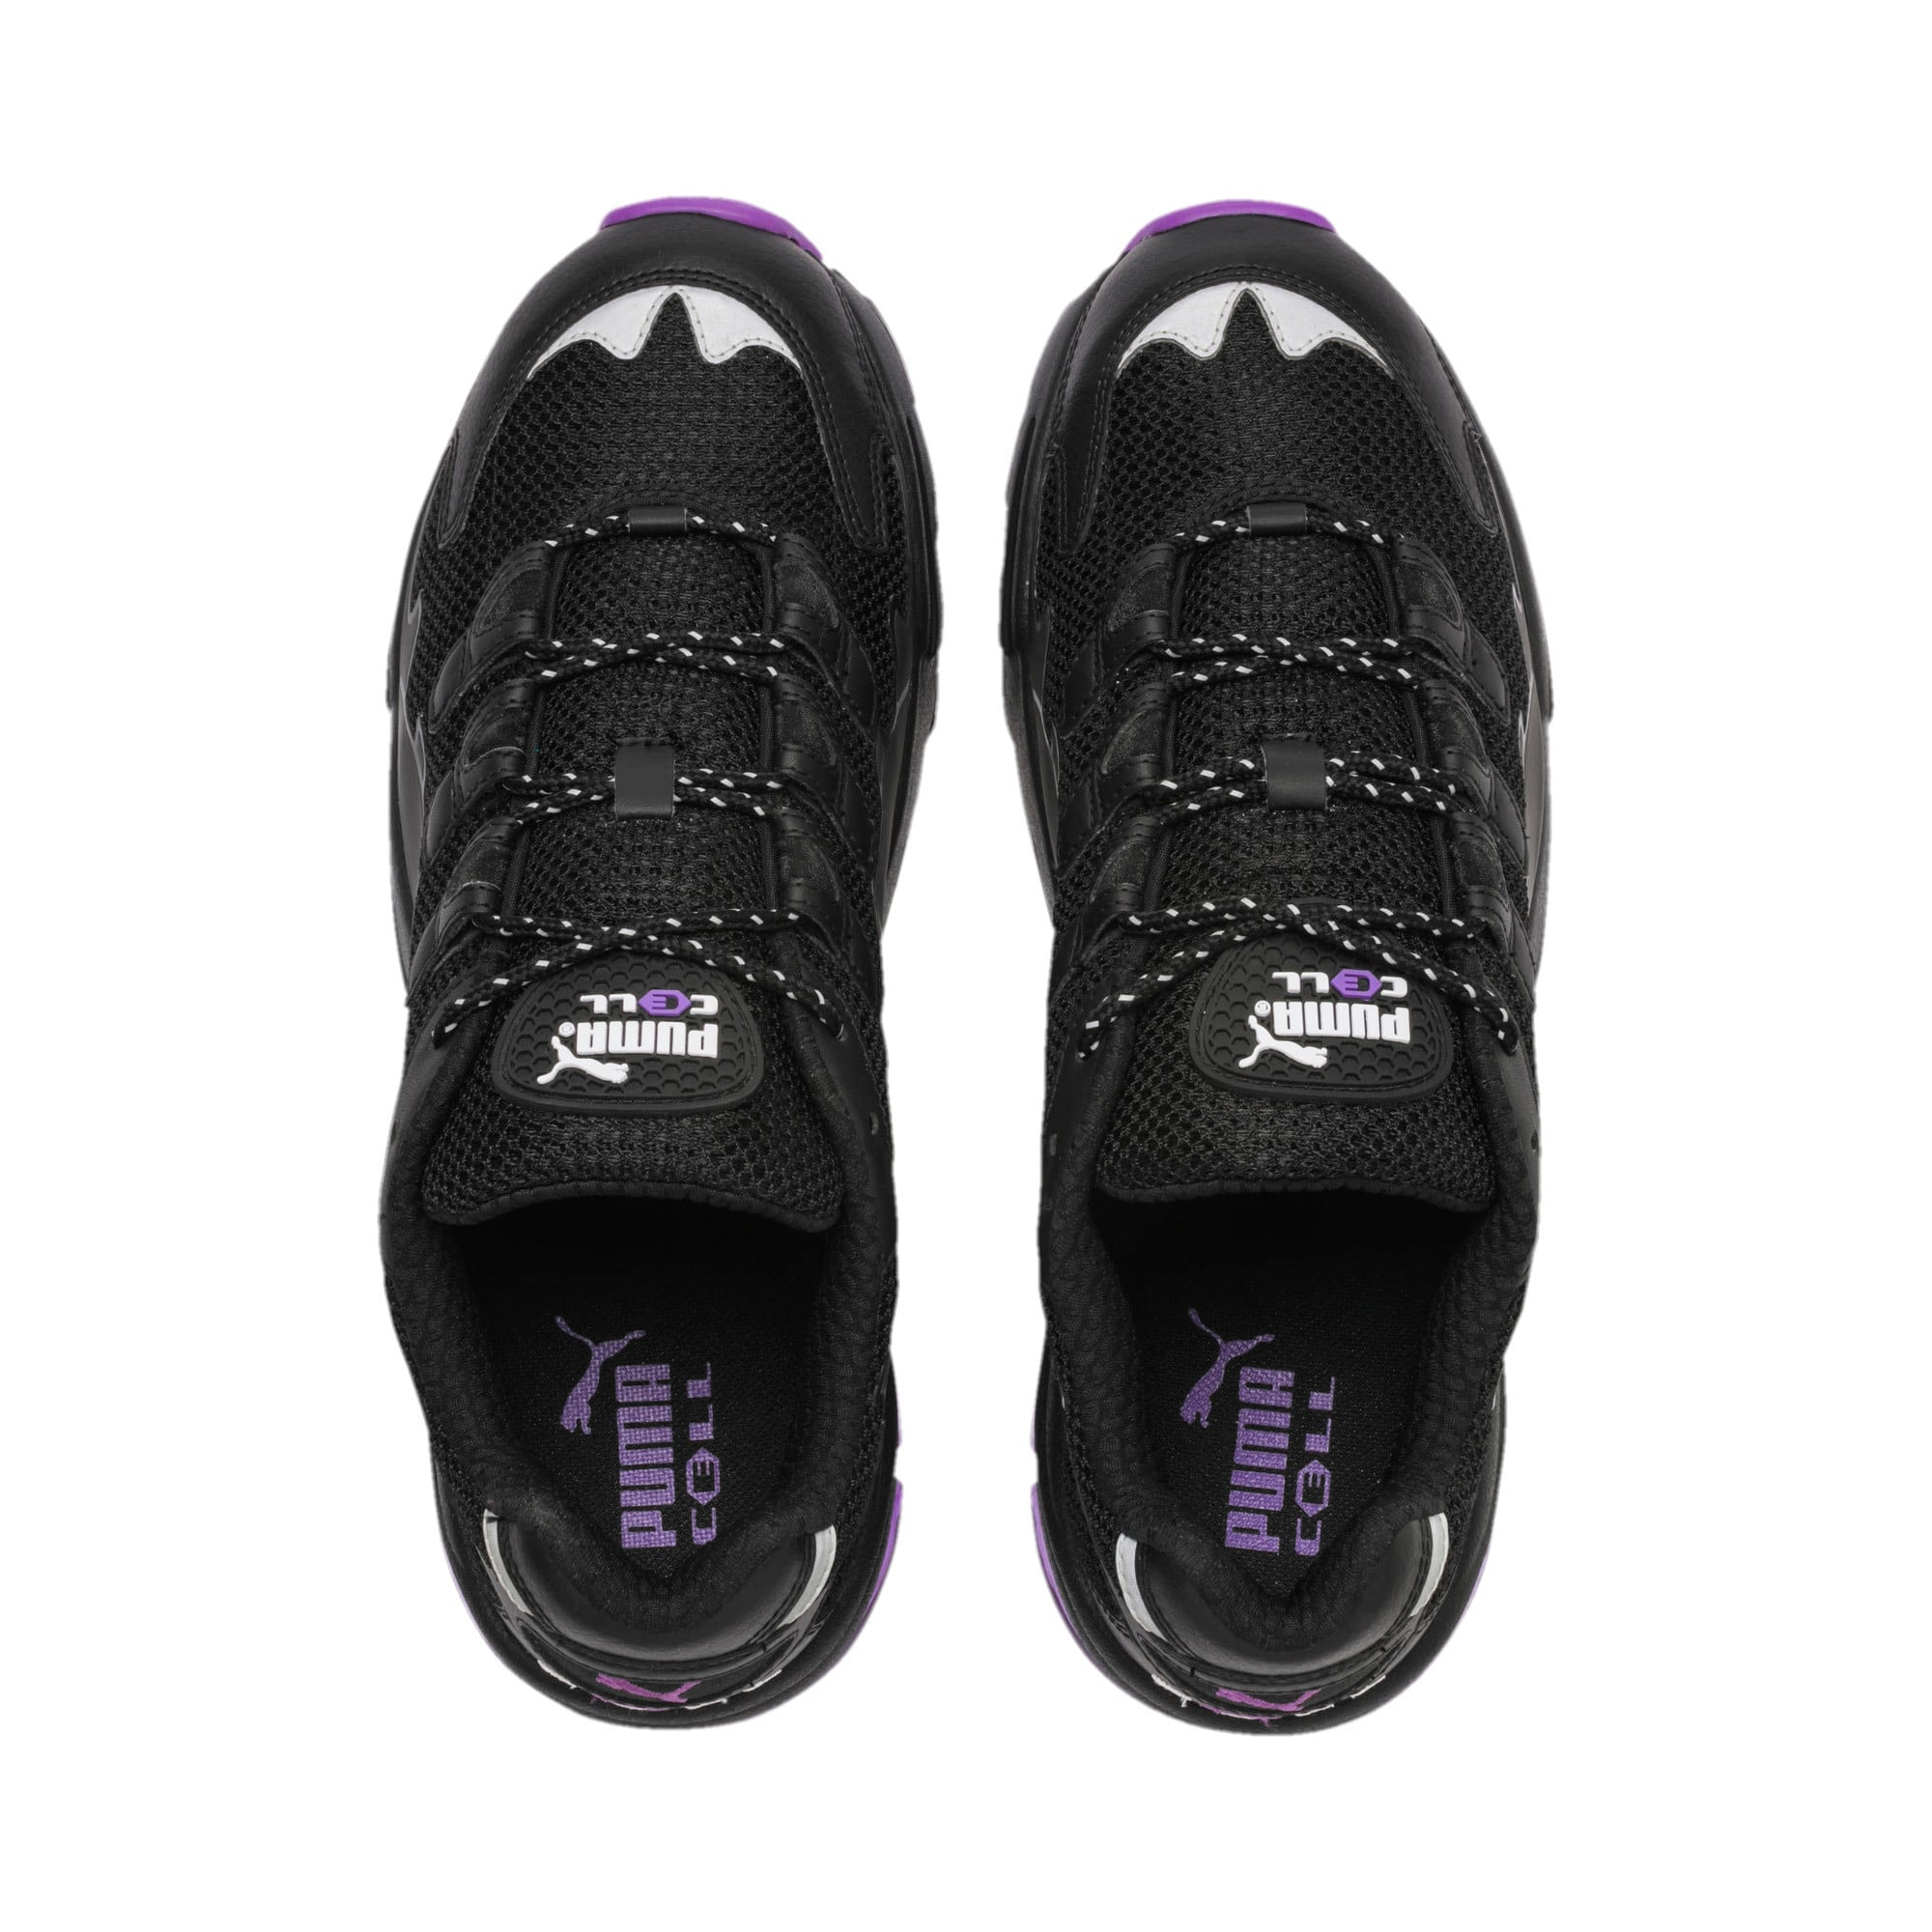 Thumbnail 7 of CELL Alien Kotto sportschoenen, Puma Black-Puma Black, medium